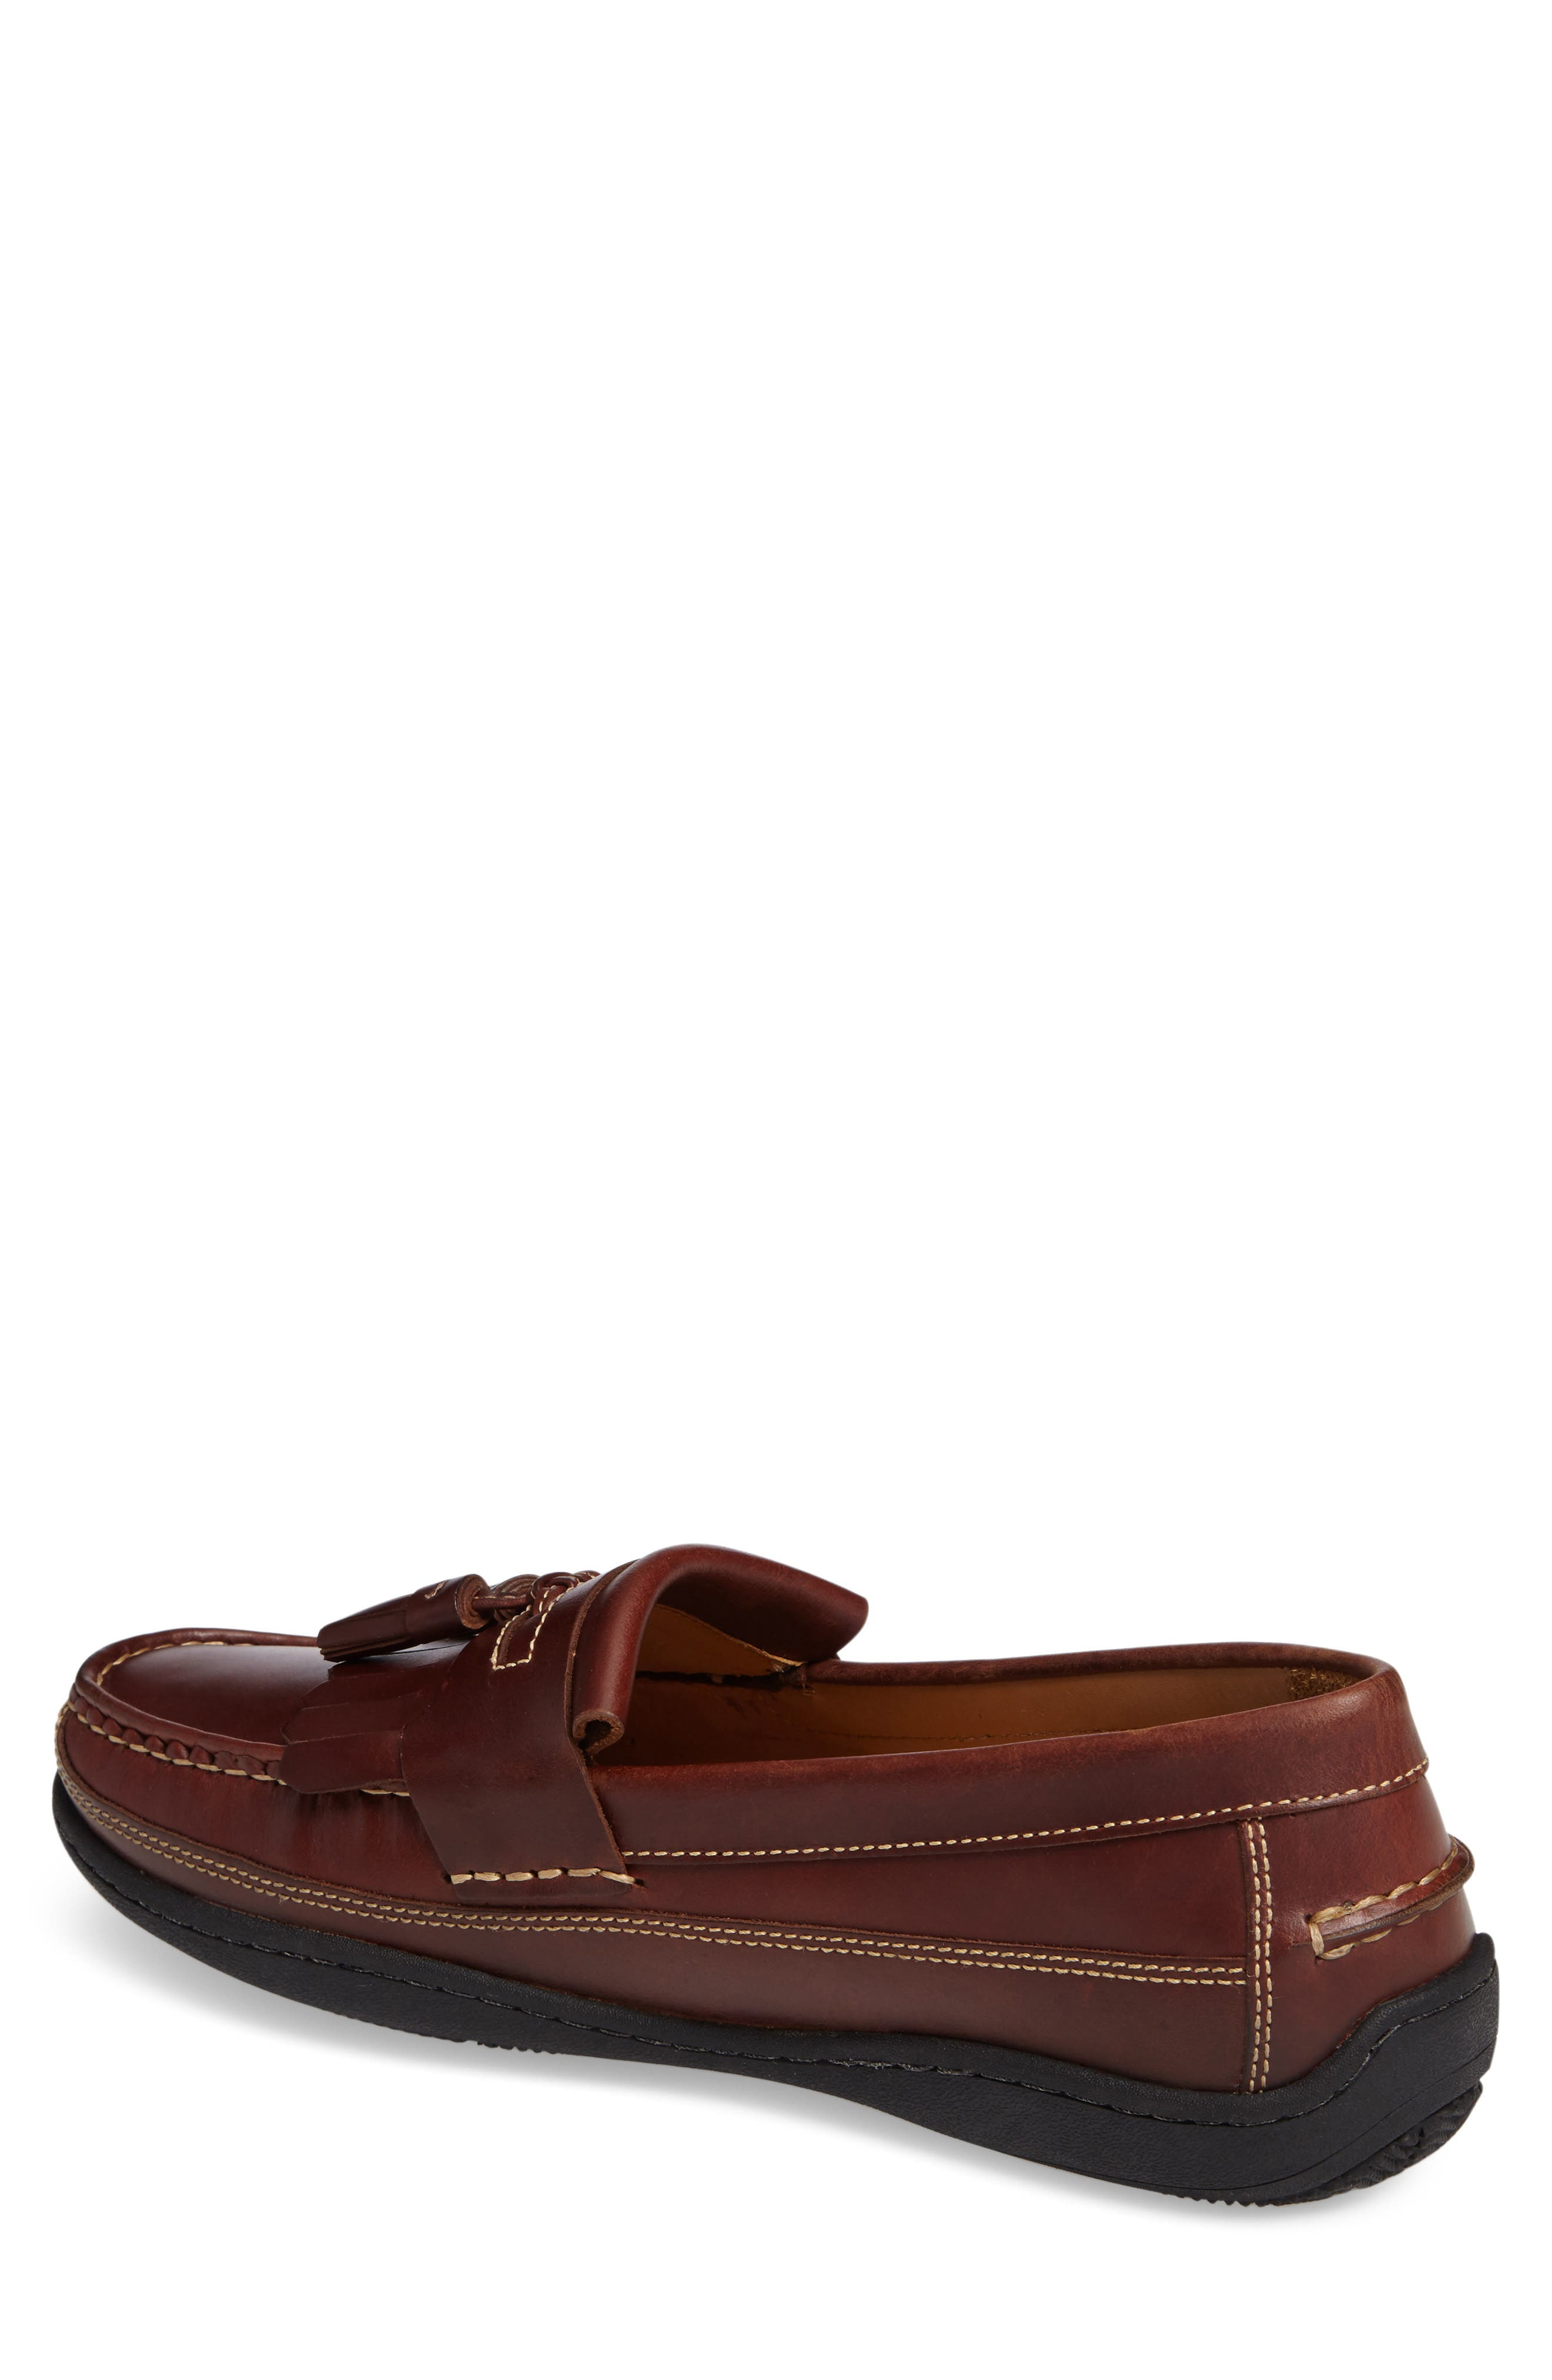 Fowler Kiltie Tassel Loafer,                             Alternate thumbnail 2, color,                             206